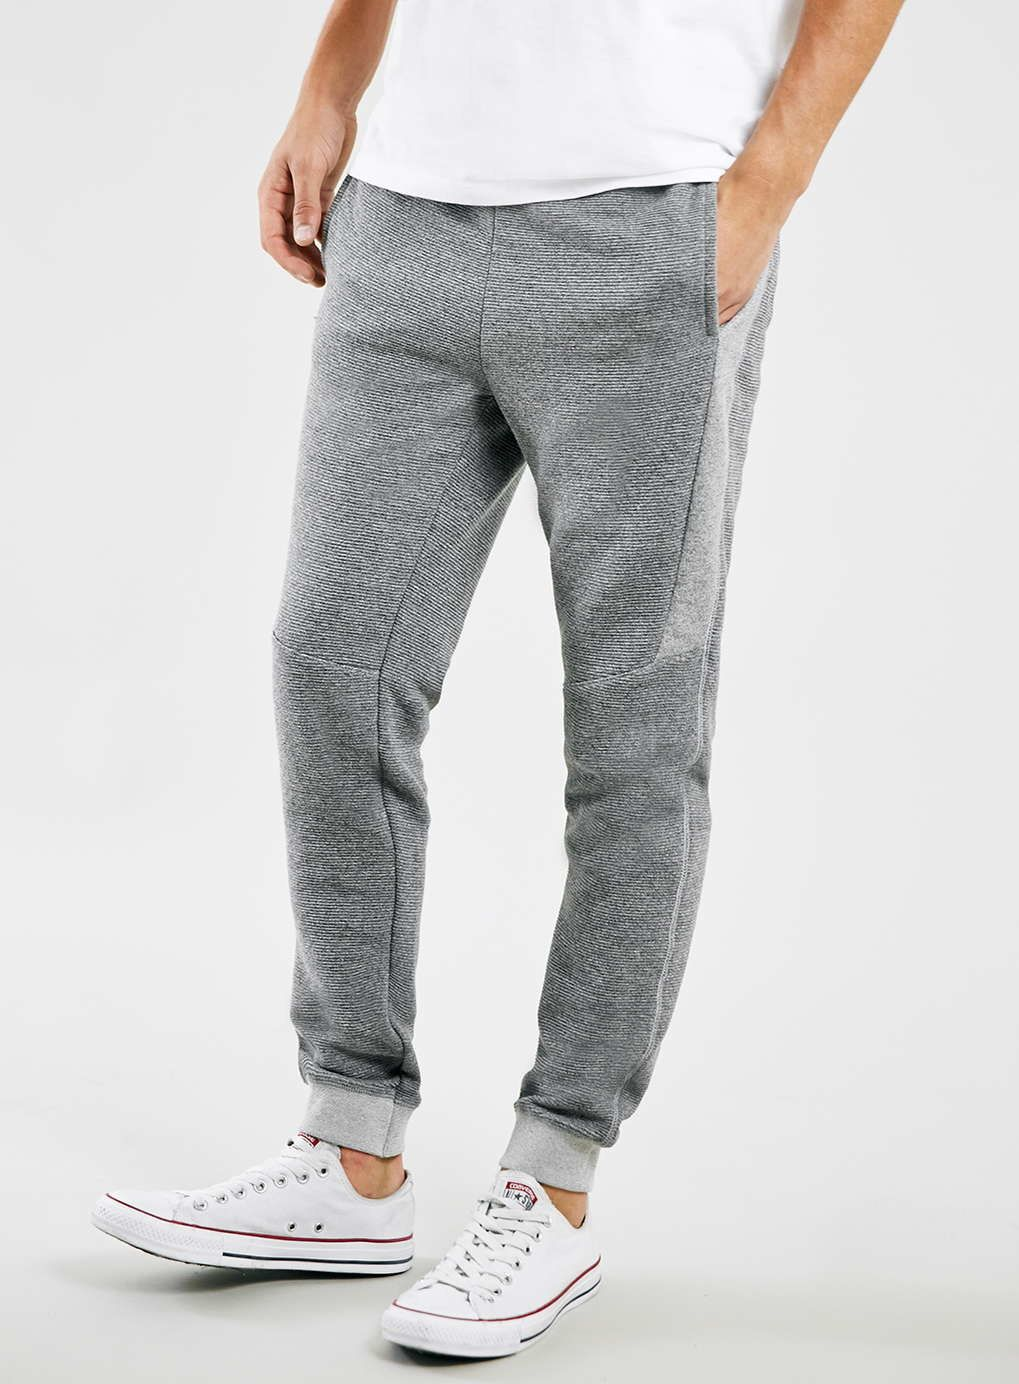 cc369b204 9 Socially-Acceptable Pairs of Sweatpants in 2019 | My Style | Mens ...